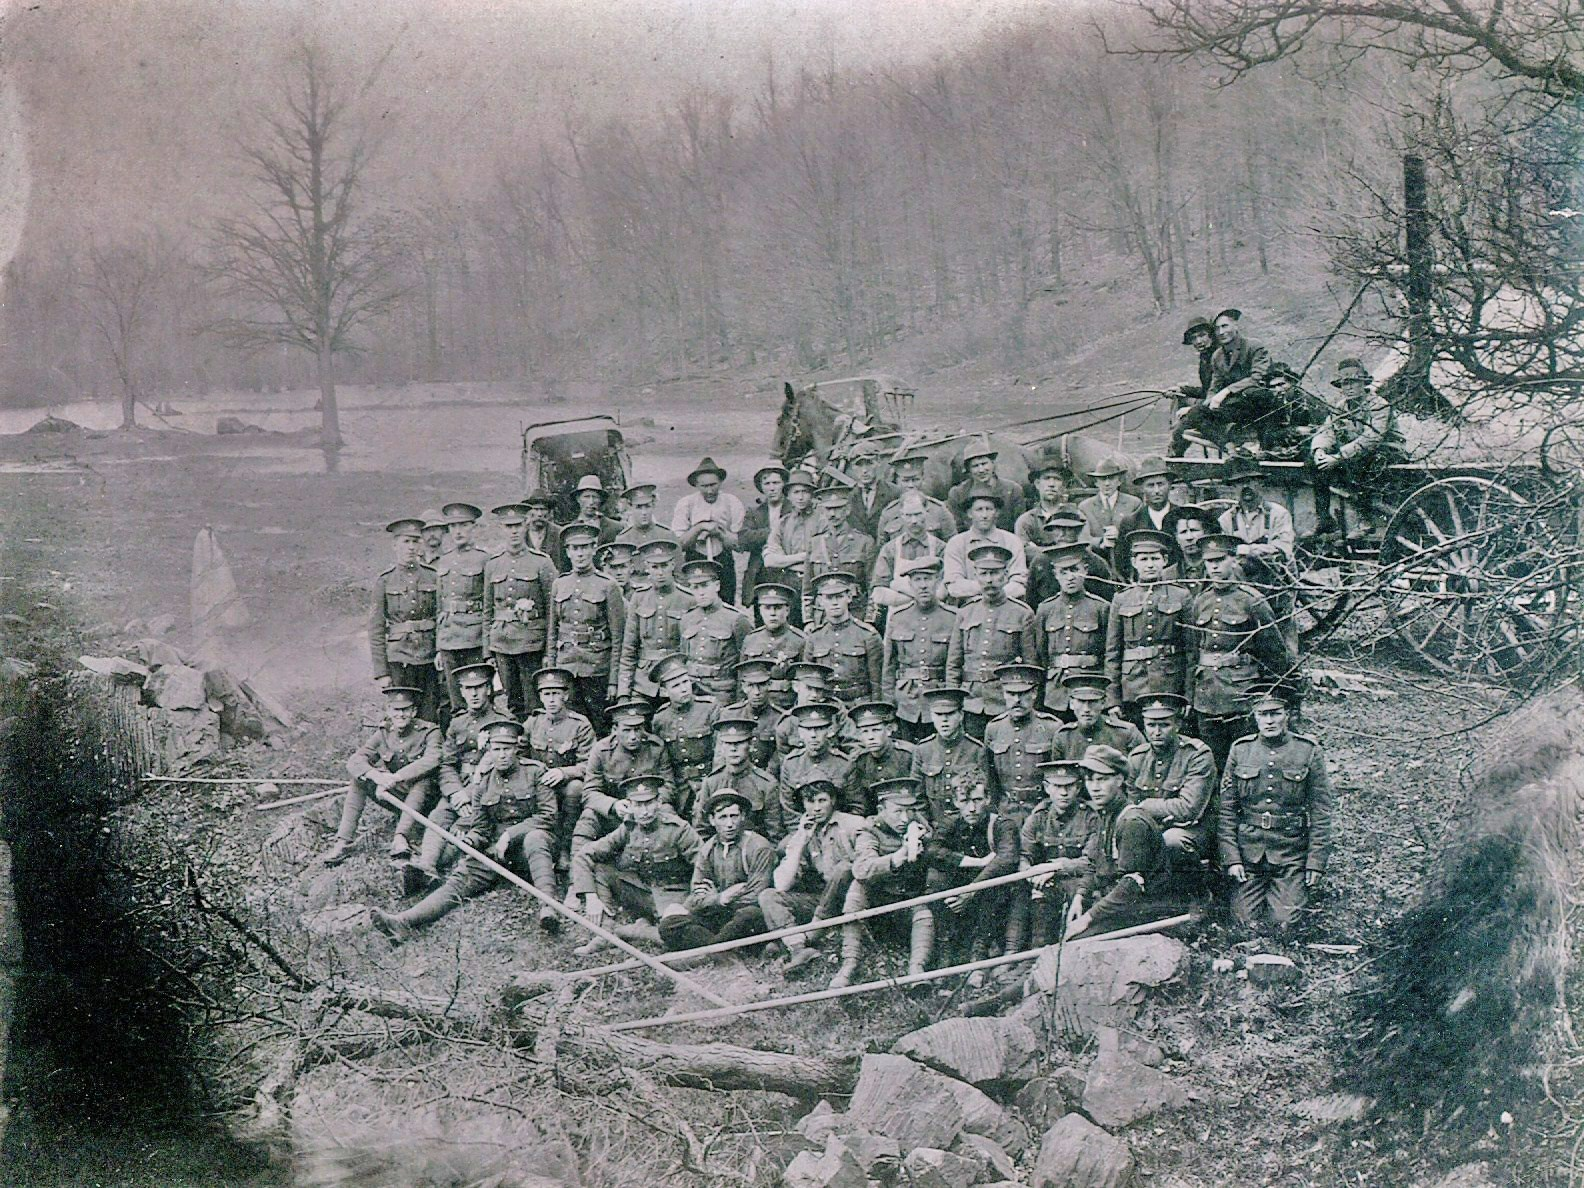 War-soldiers on Crowe River, with Pearce Lumber drivers